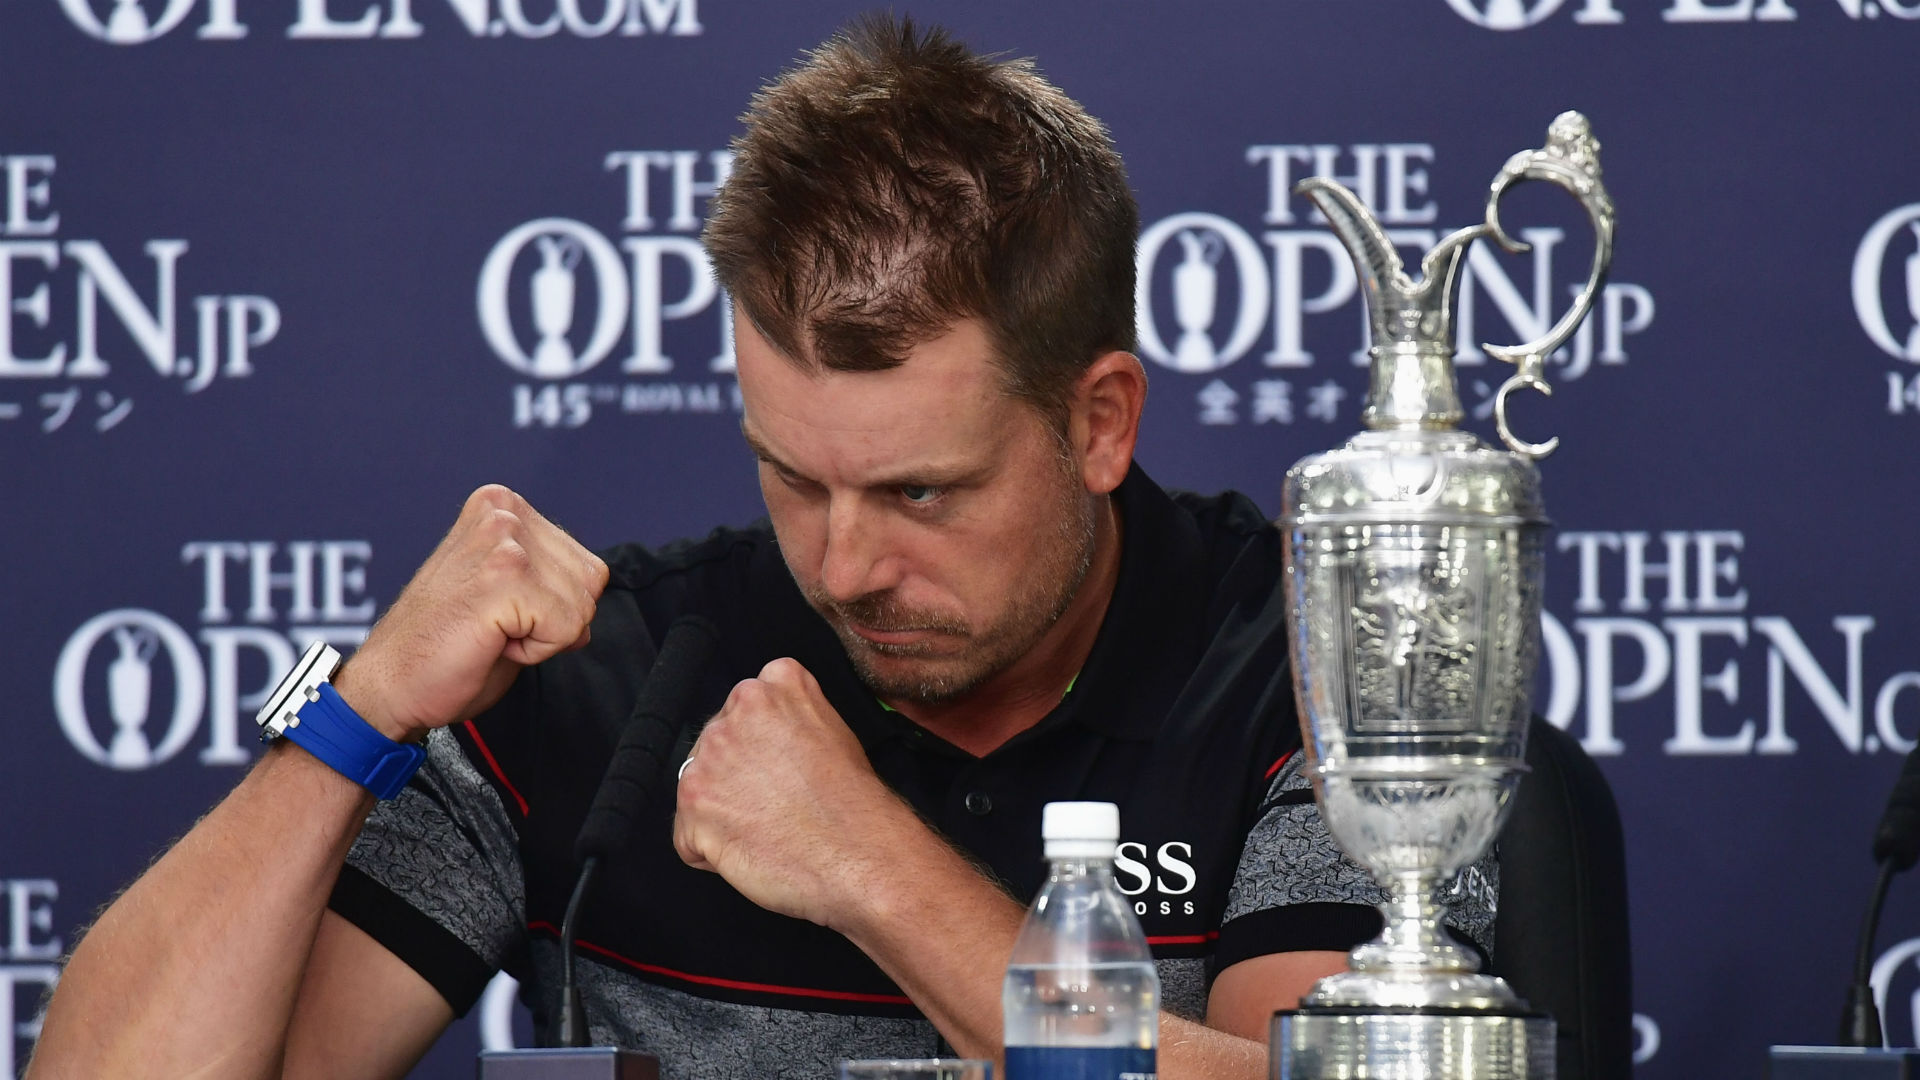 Stenson wins Open with record score